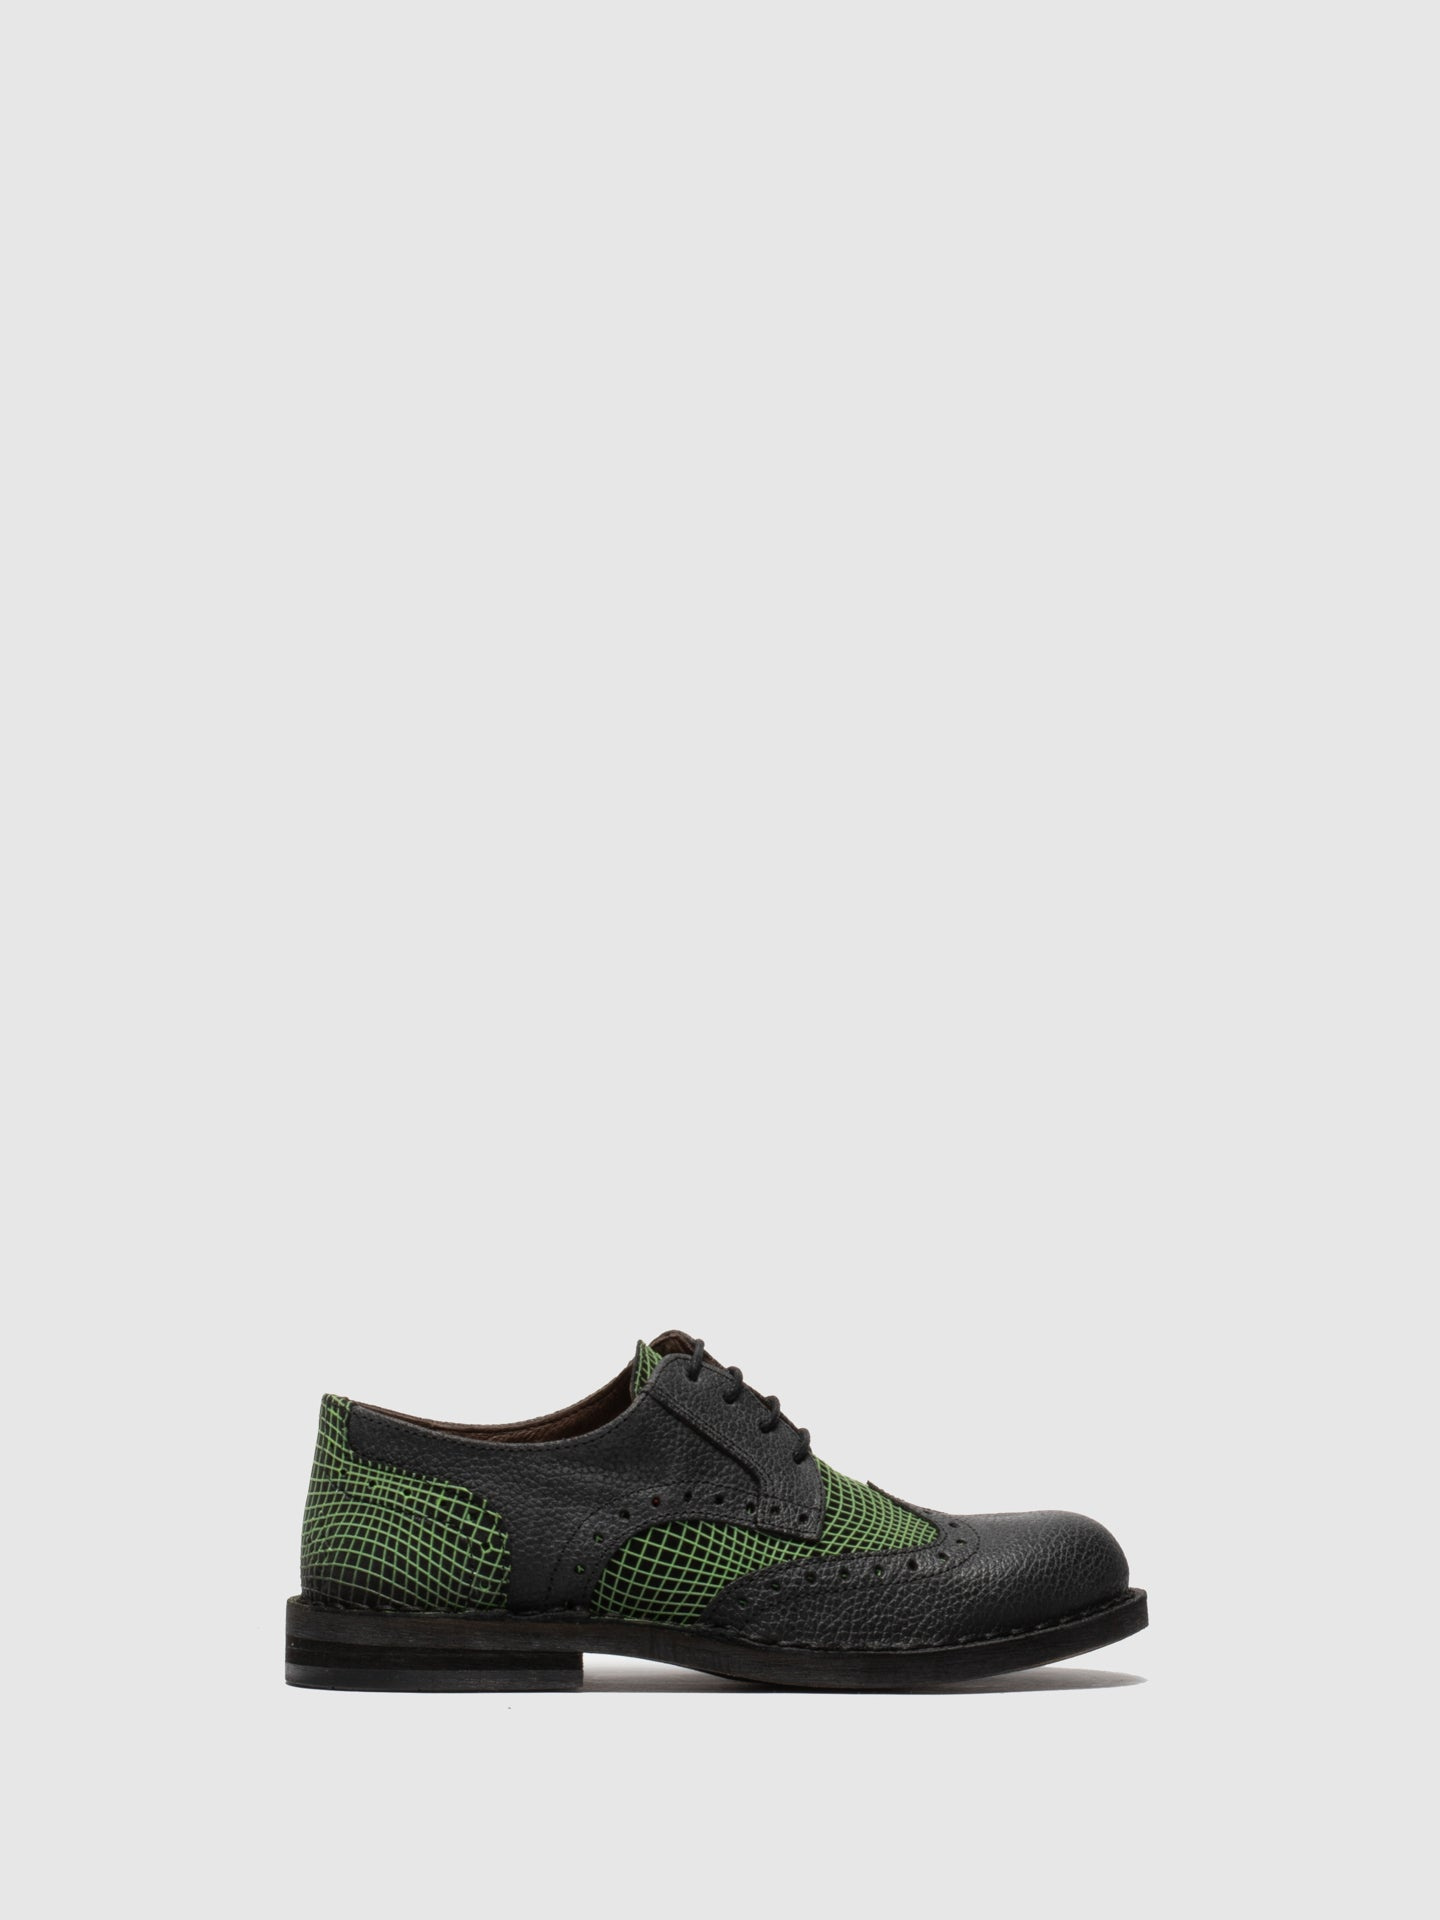 Fly London Green Black Derby Shoes